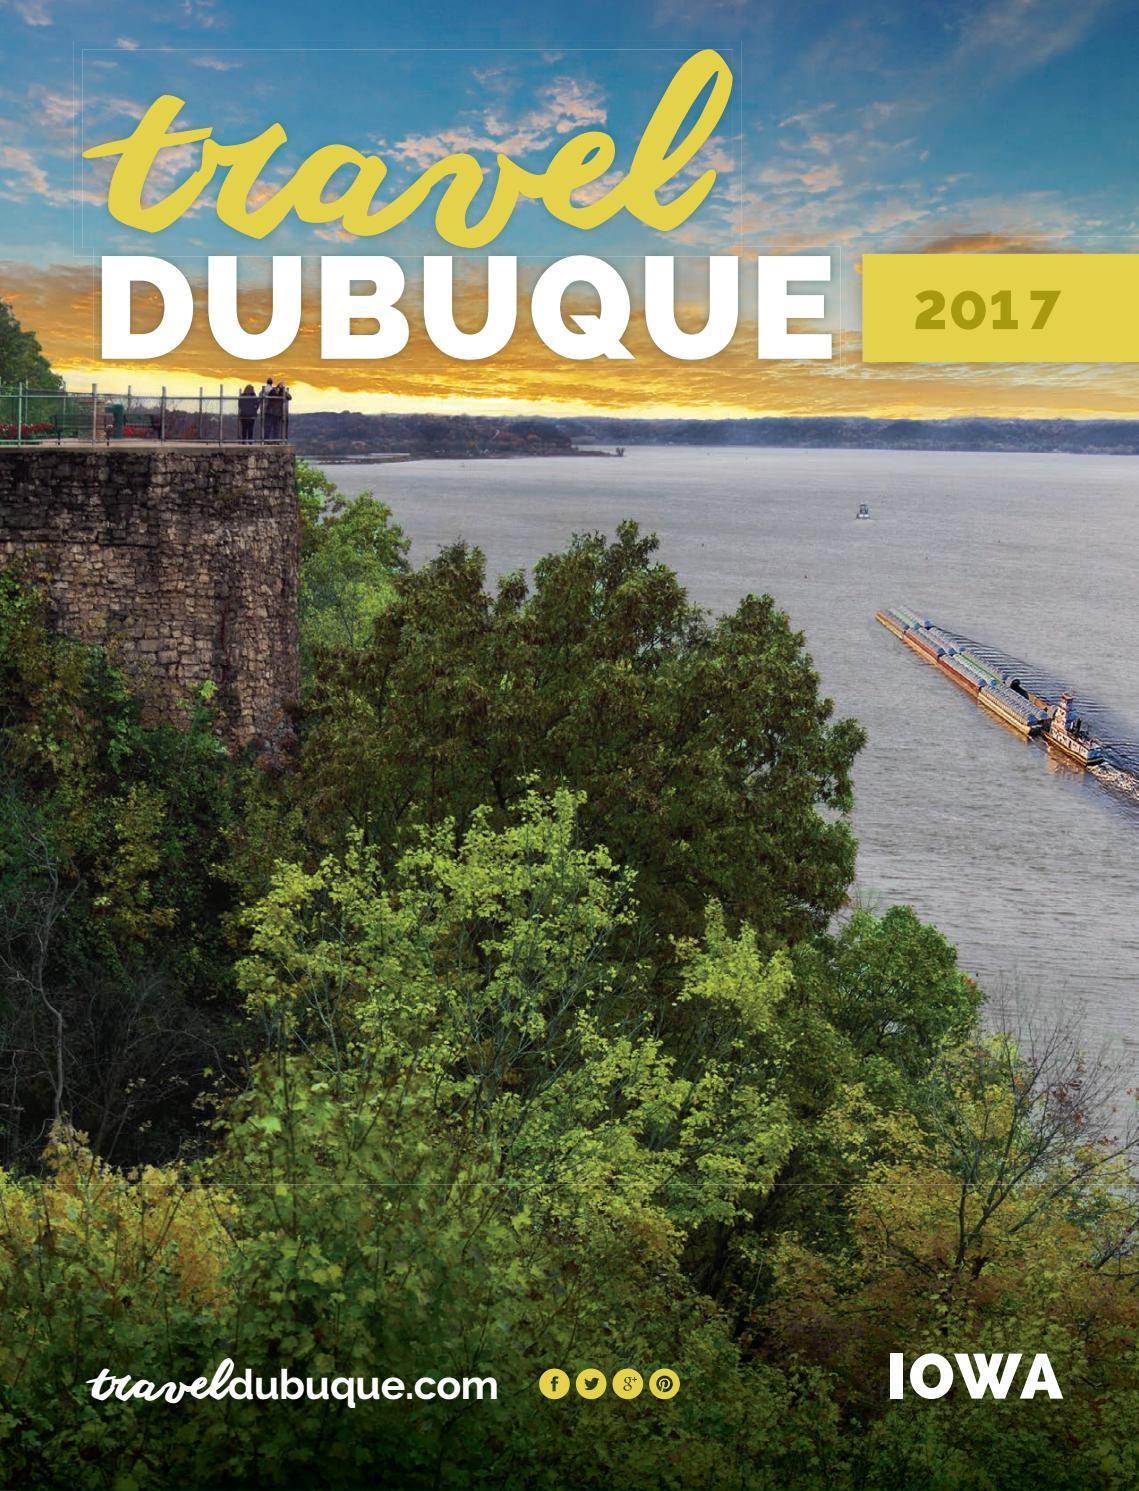 2017 Dubuque, Iowa Travel Guide by Travel Dubuque - issuu